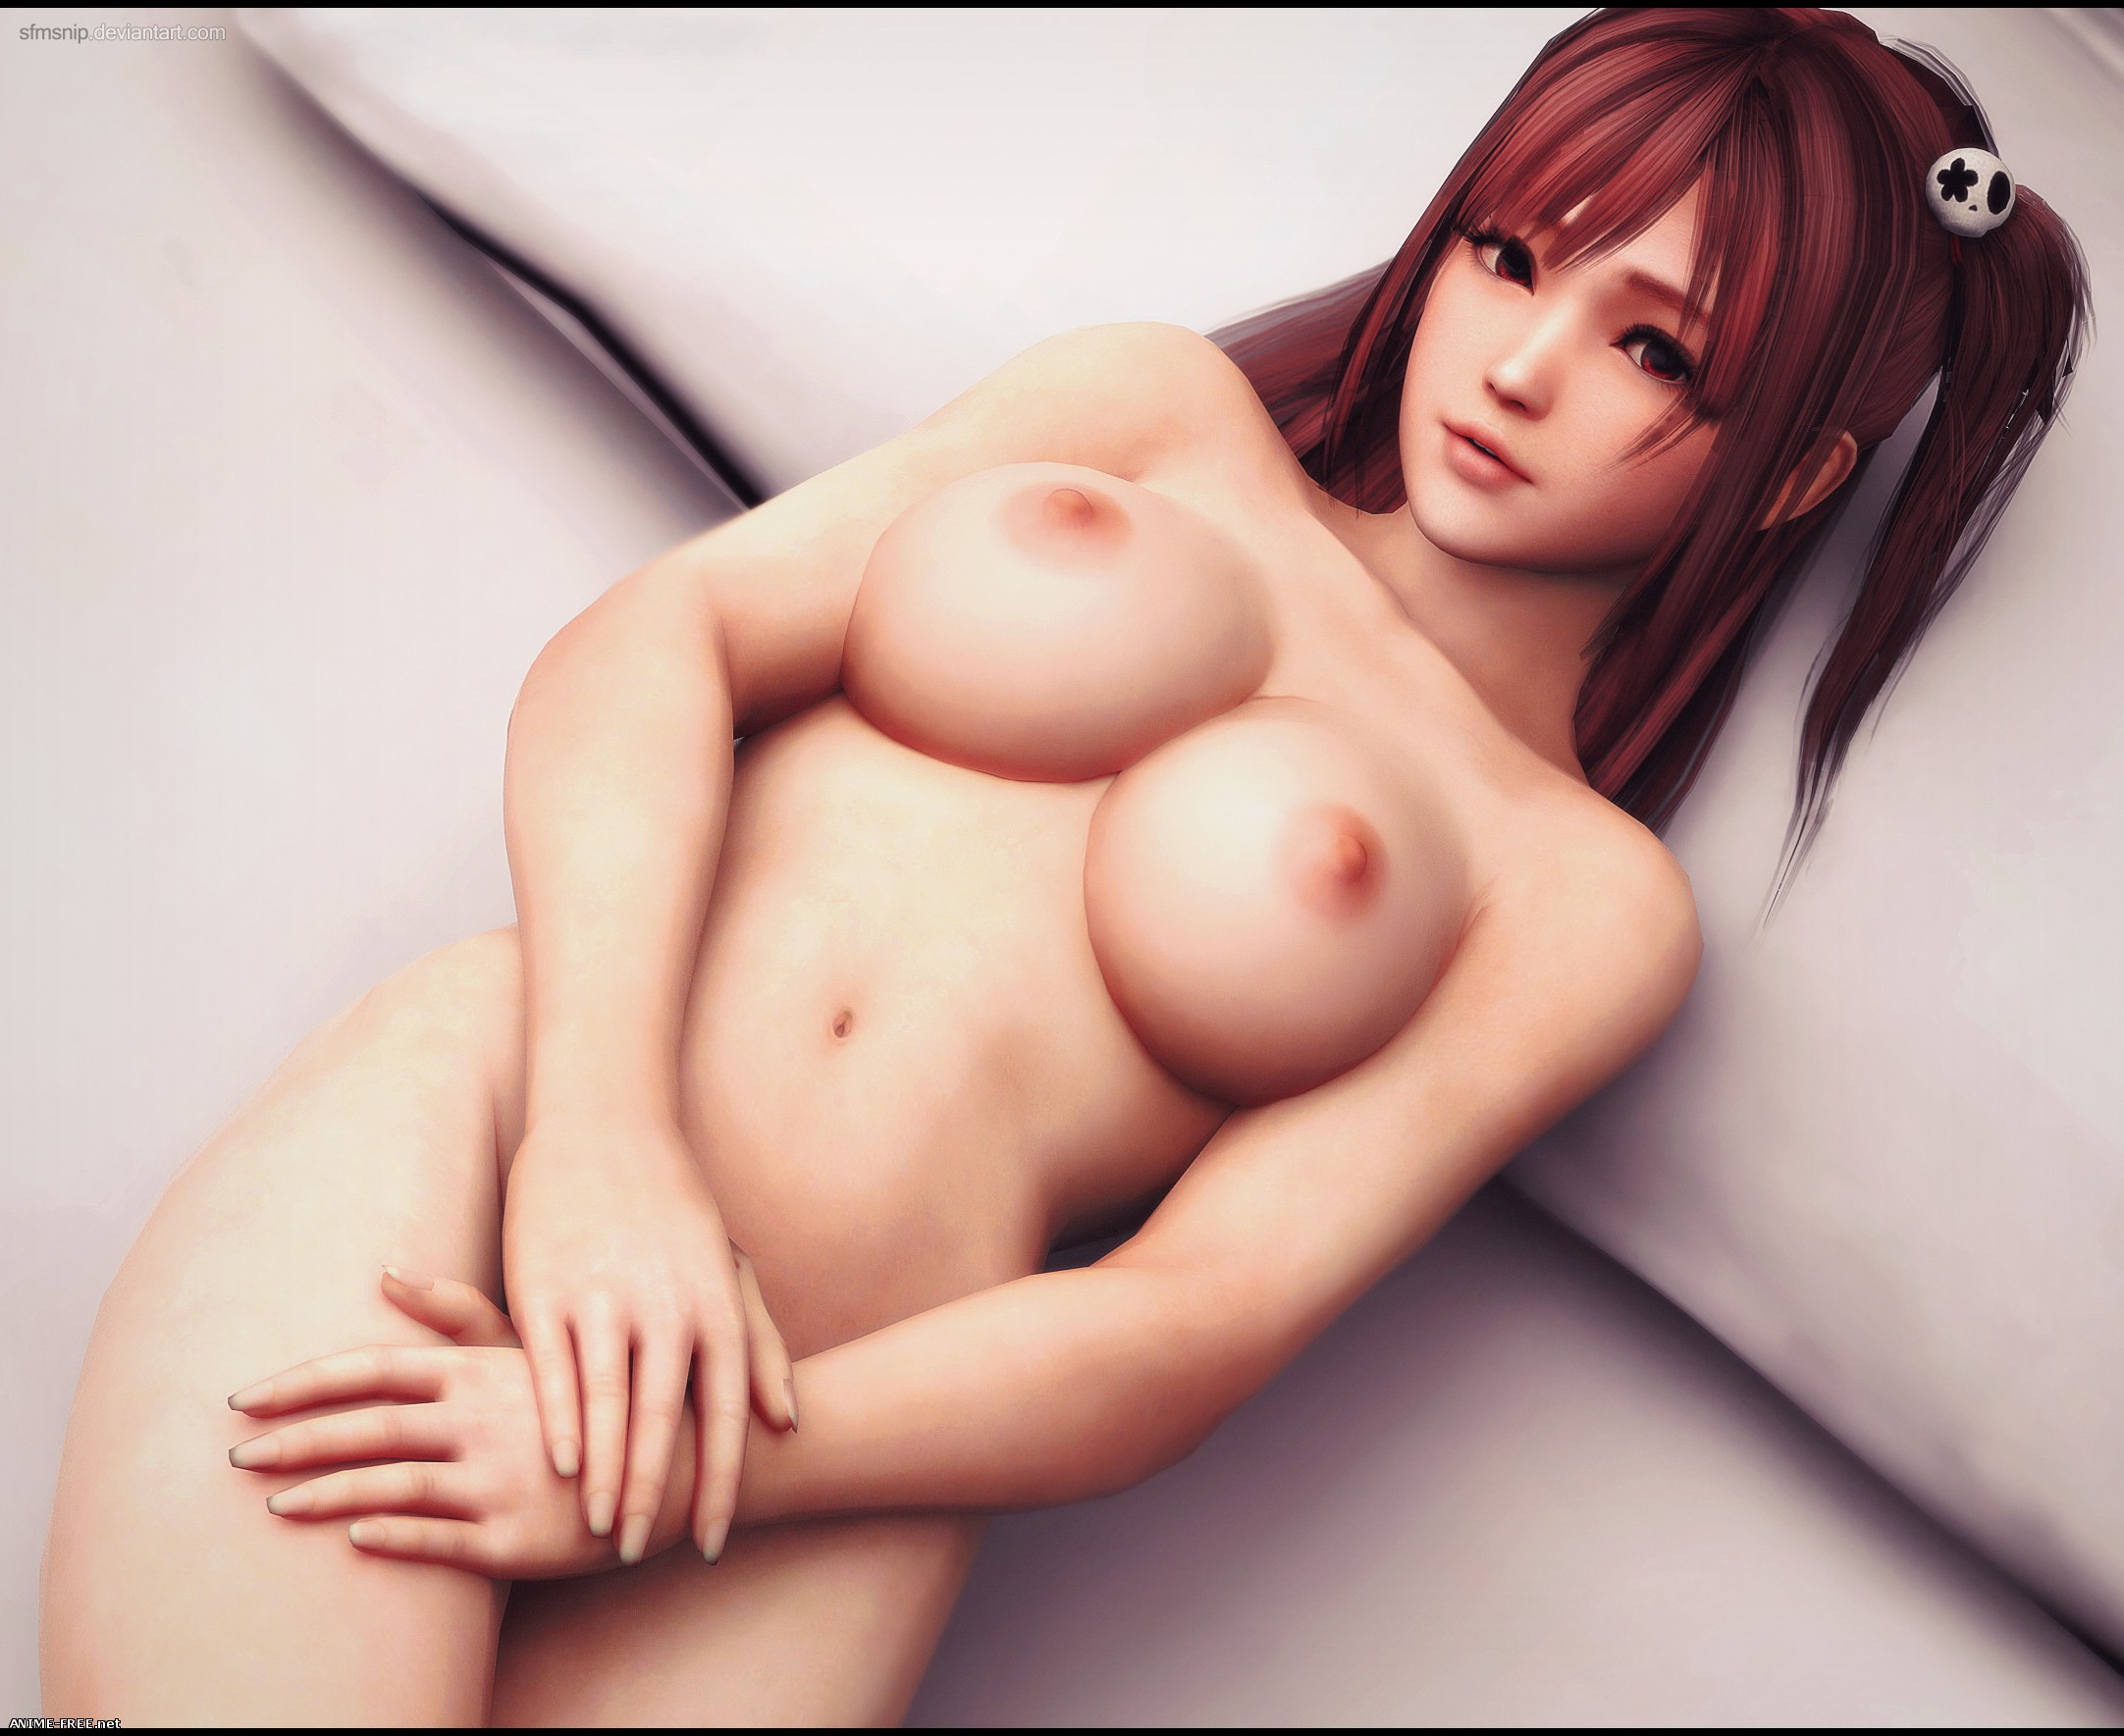 SnipSFM (Collection) [Uncen] [3D, Animation] [GIF,PNG,JPG,WebM] Hentai ART